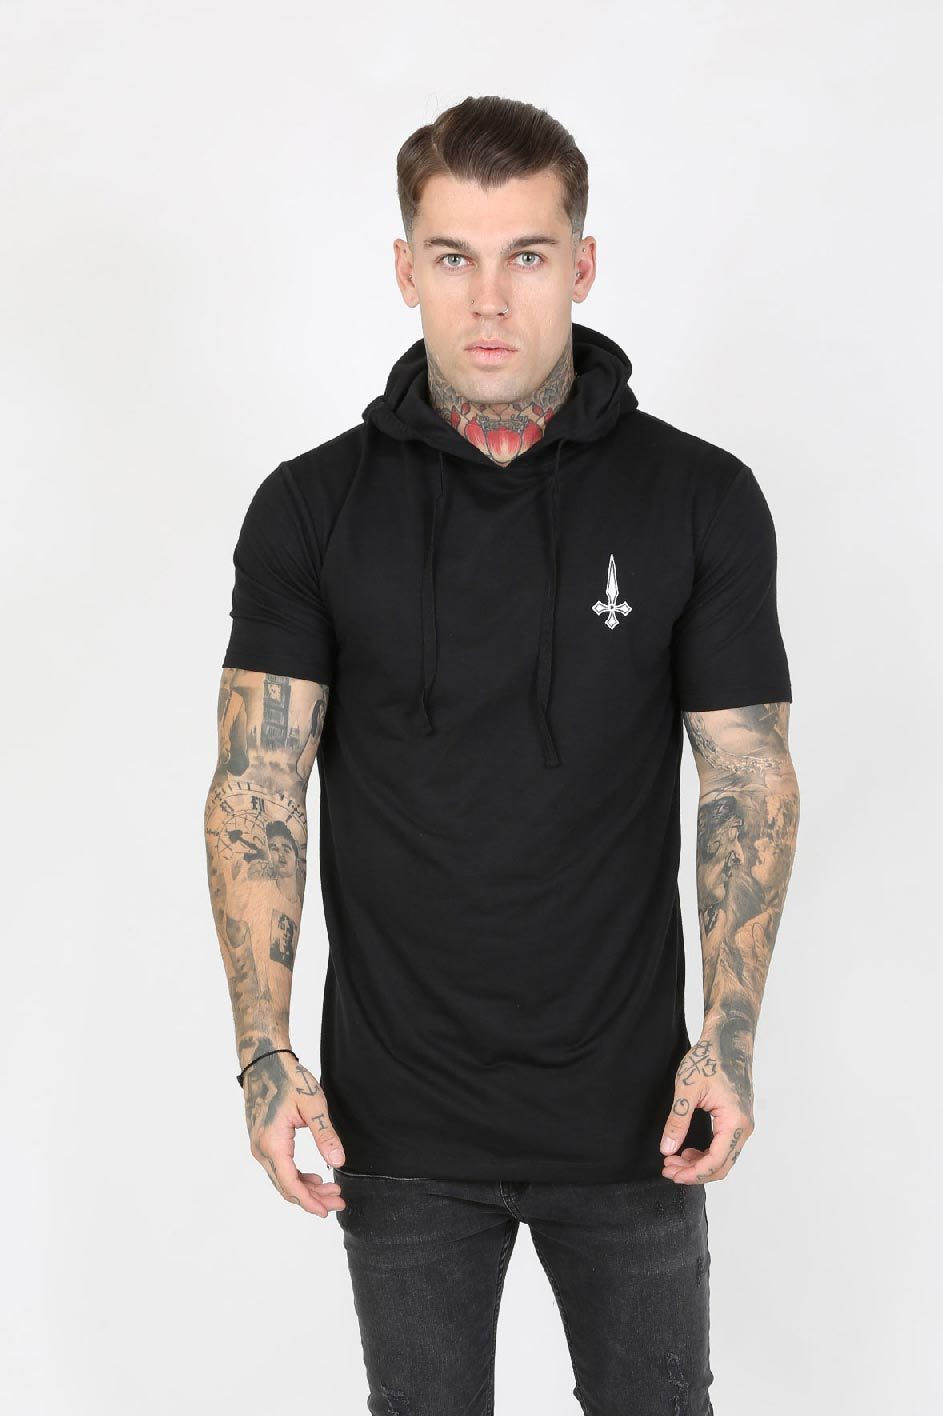 Judas Sinned Dreww Hooded Badge Men's T-Shirt - Black - Judas Sinned Clothing